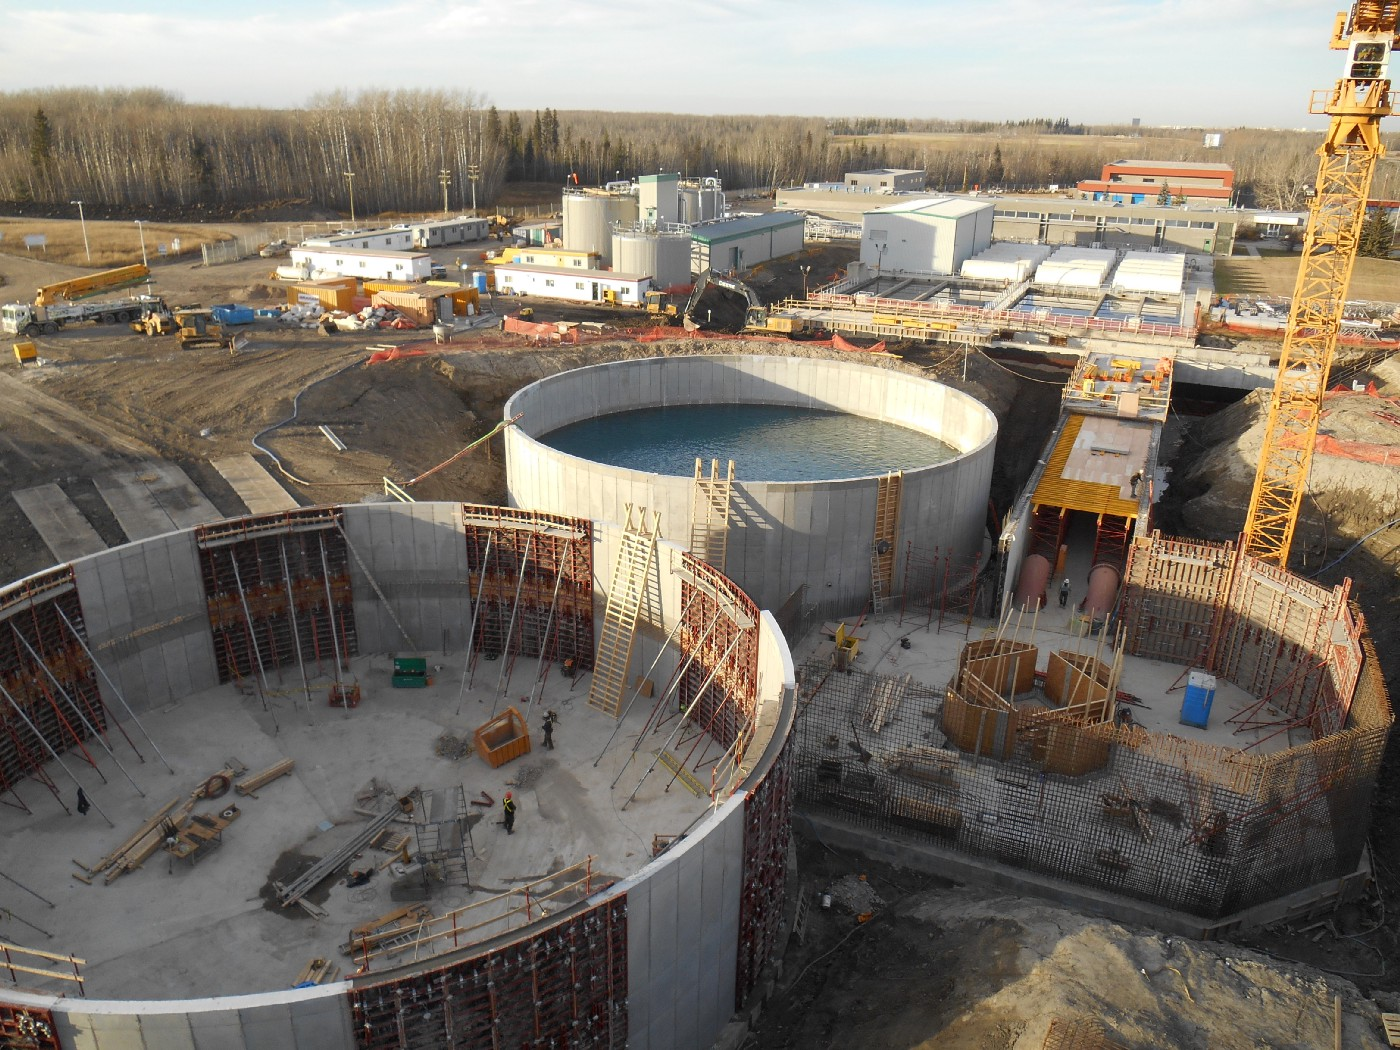 Two tanks belonging to Aquatera's water plant stand side by side near partially constructed structures.